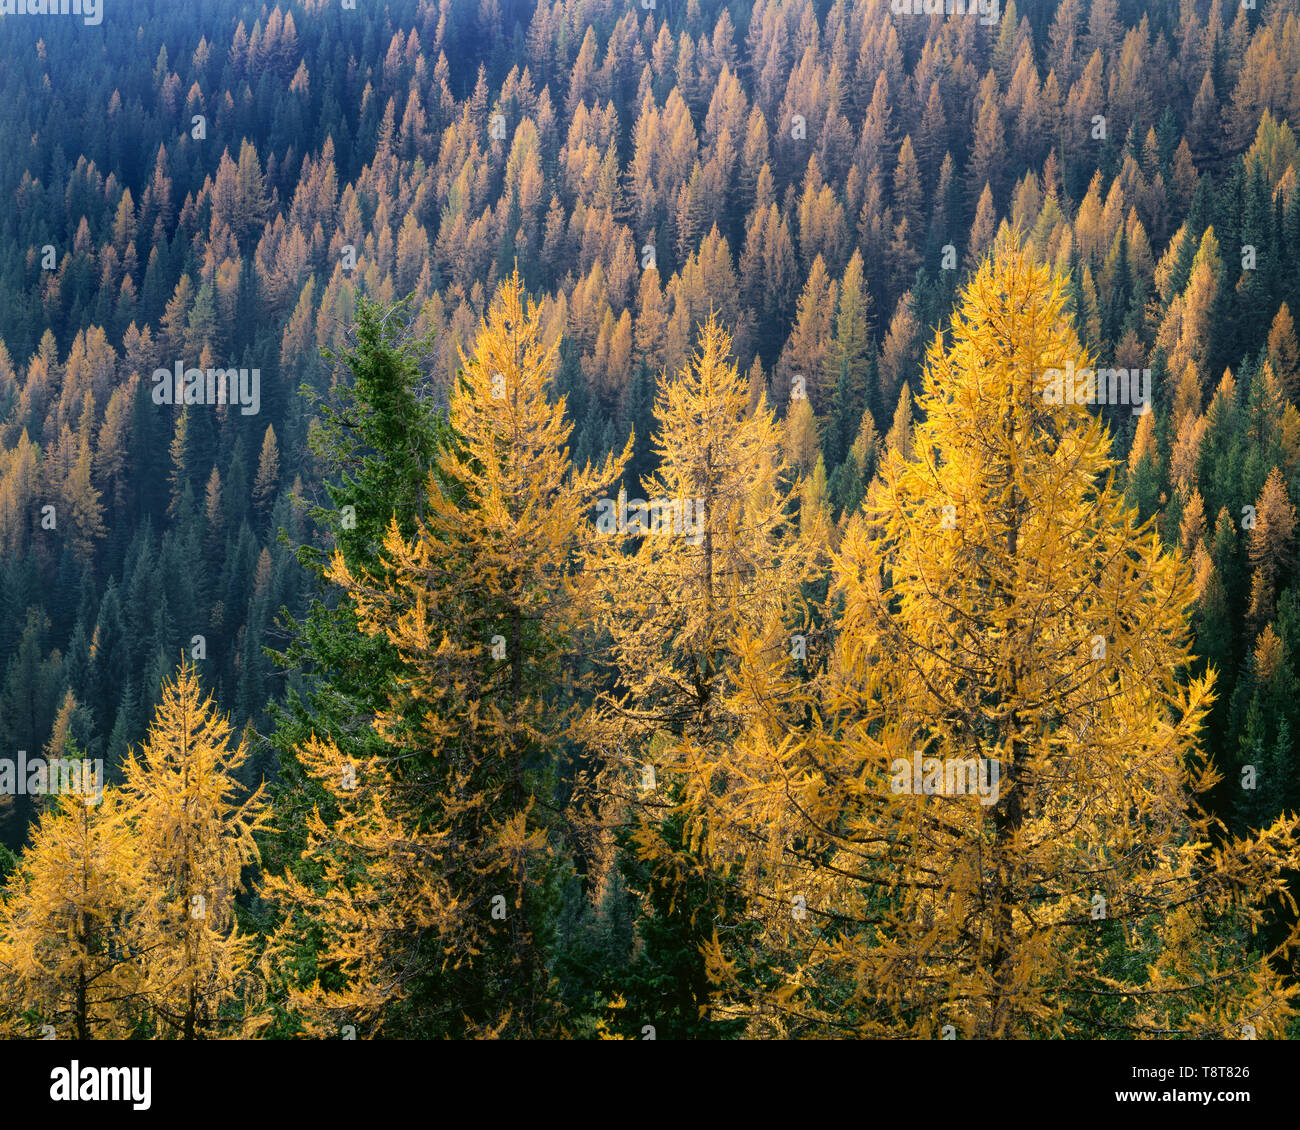 USA, Washington, Colville National Forest, Autumn colored western larch trees stand out in mixed coniferous forest with Douglas fir and pine. - Stock Image